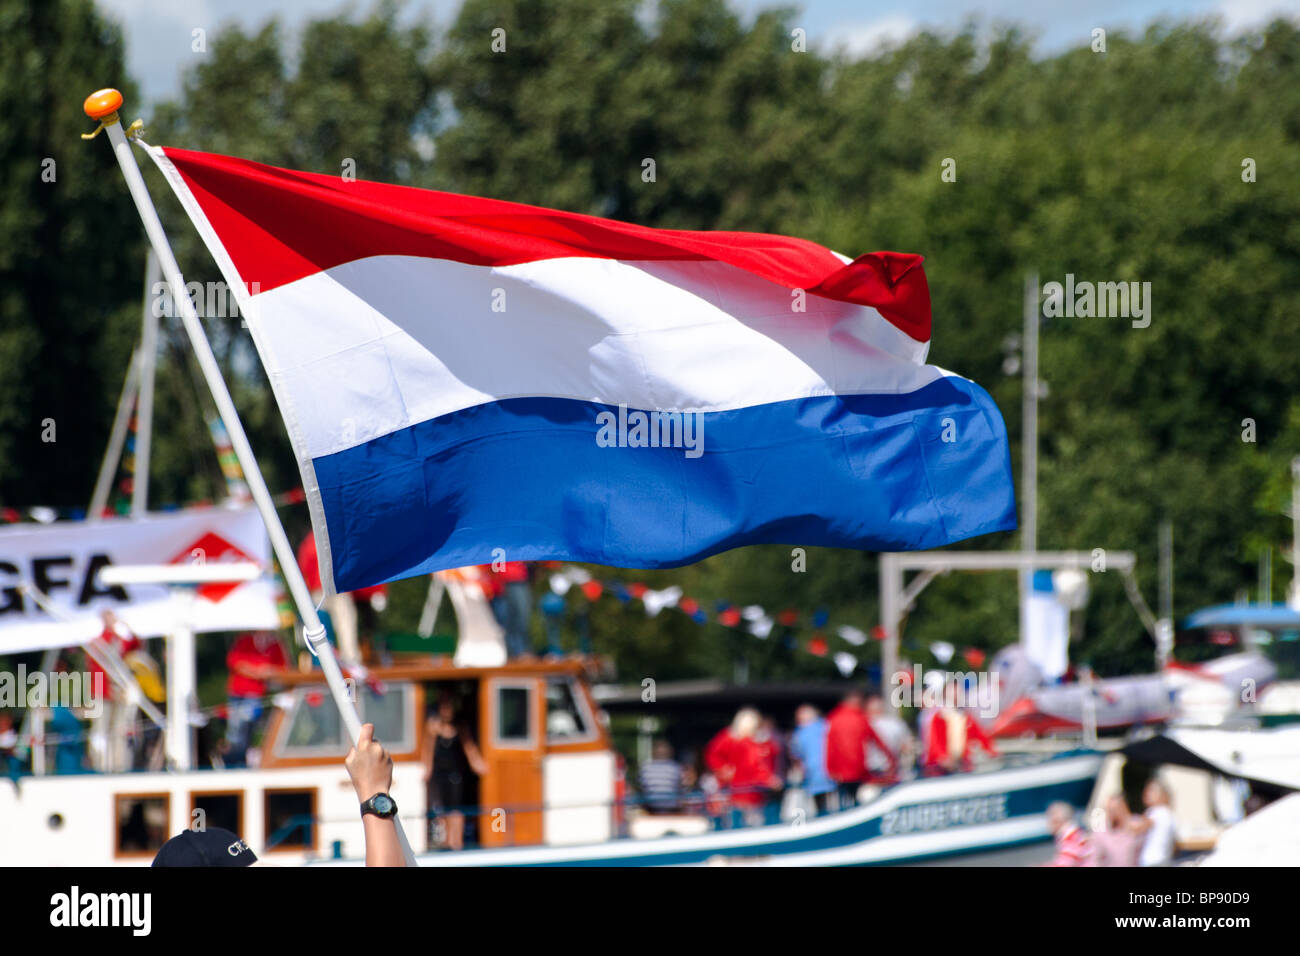 Dutch flag waved during SAIL Amsterdam 2010 - Stock Image